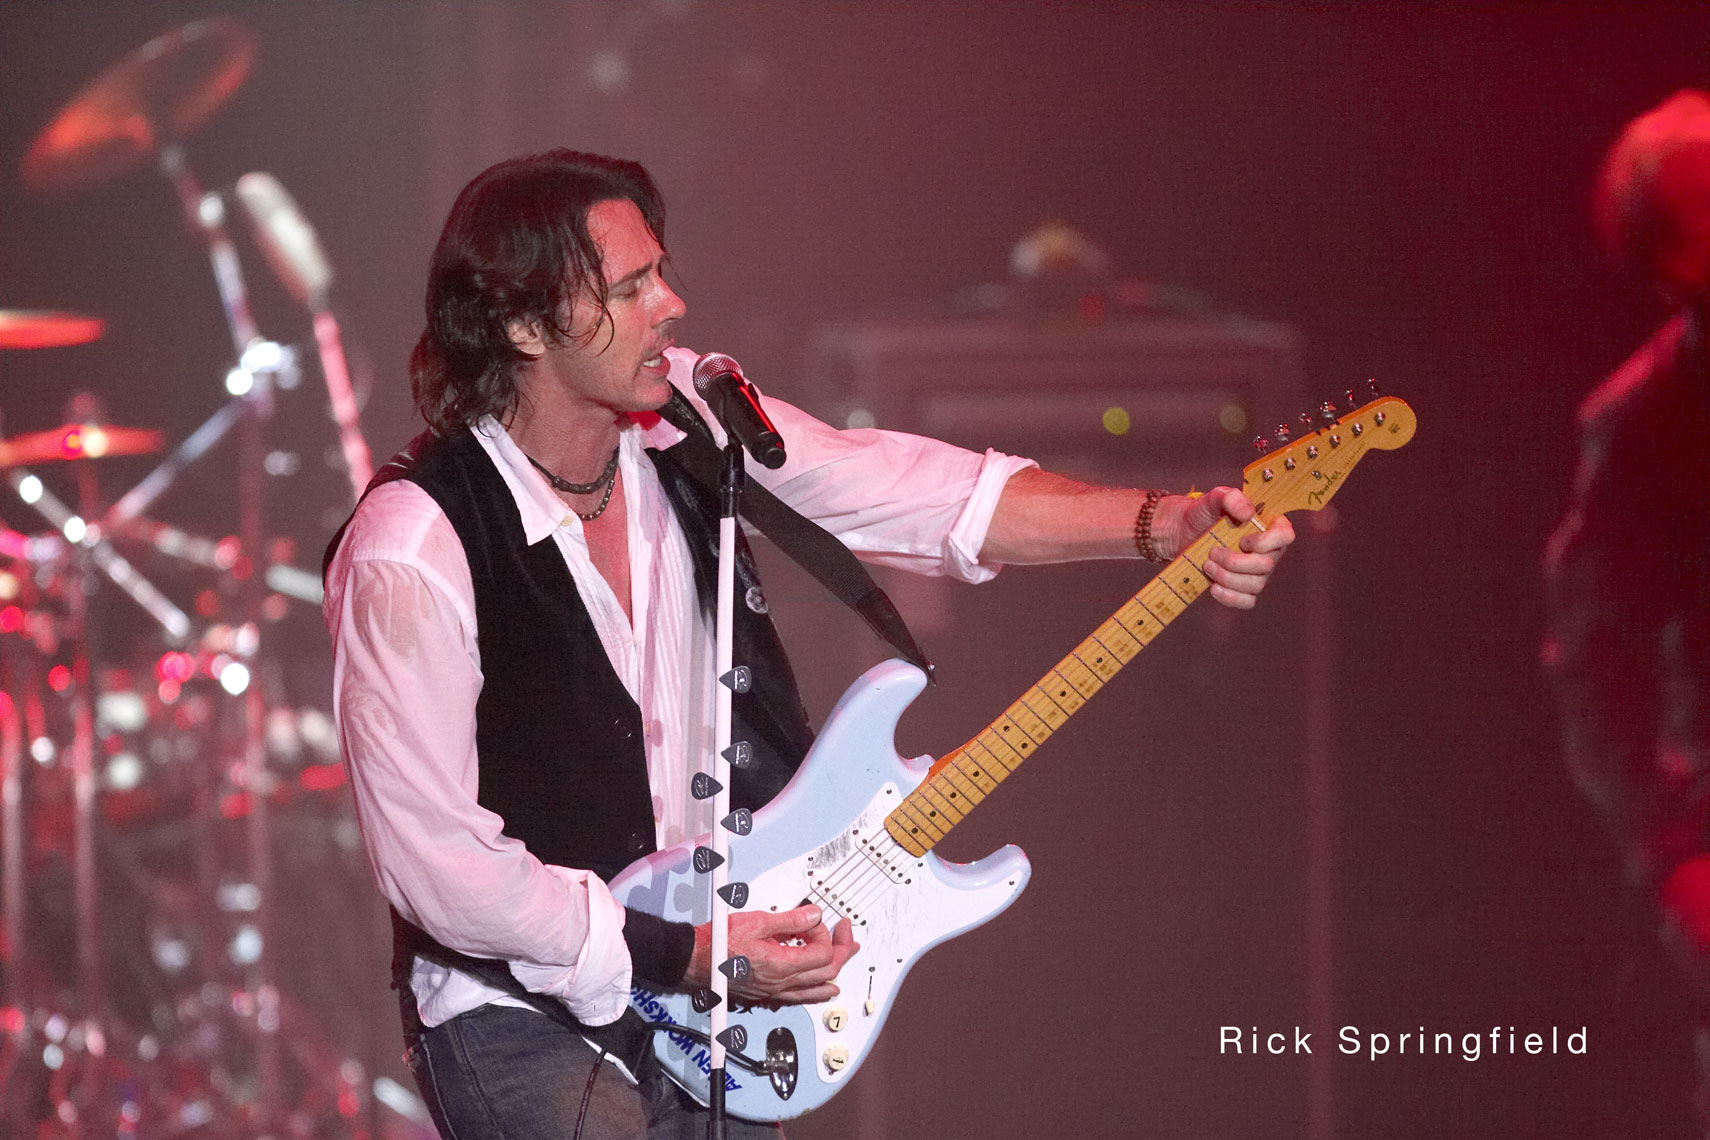 Rick Springfield/Mystic Lake Casino/lifestyle photo